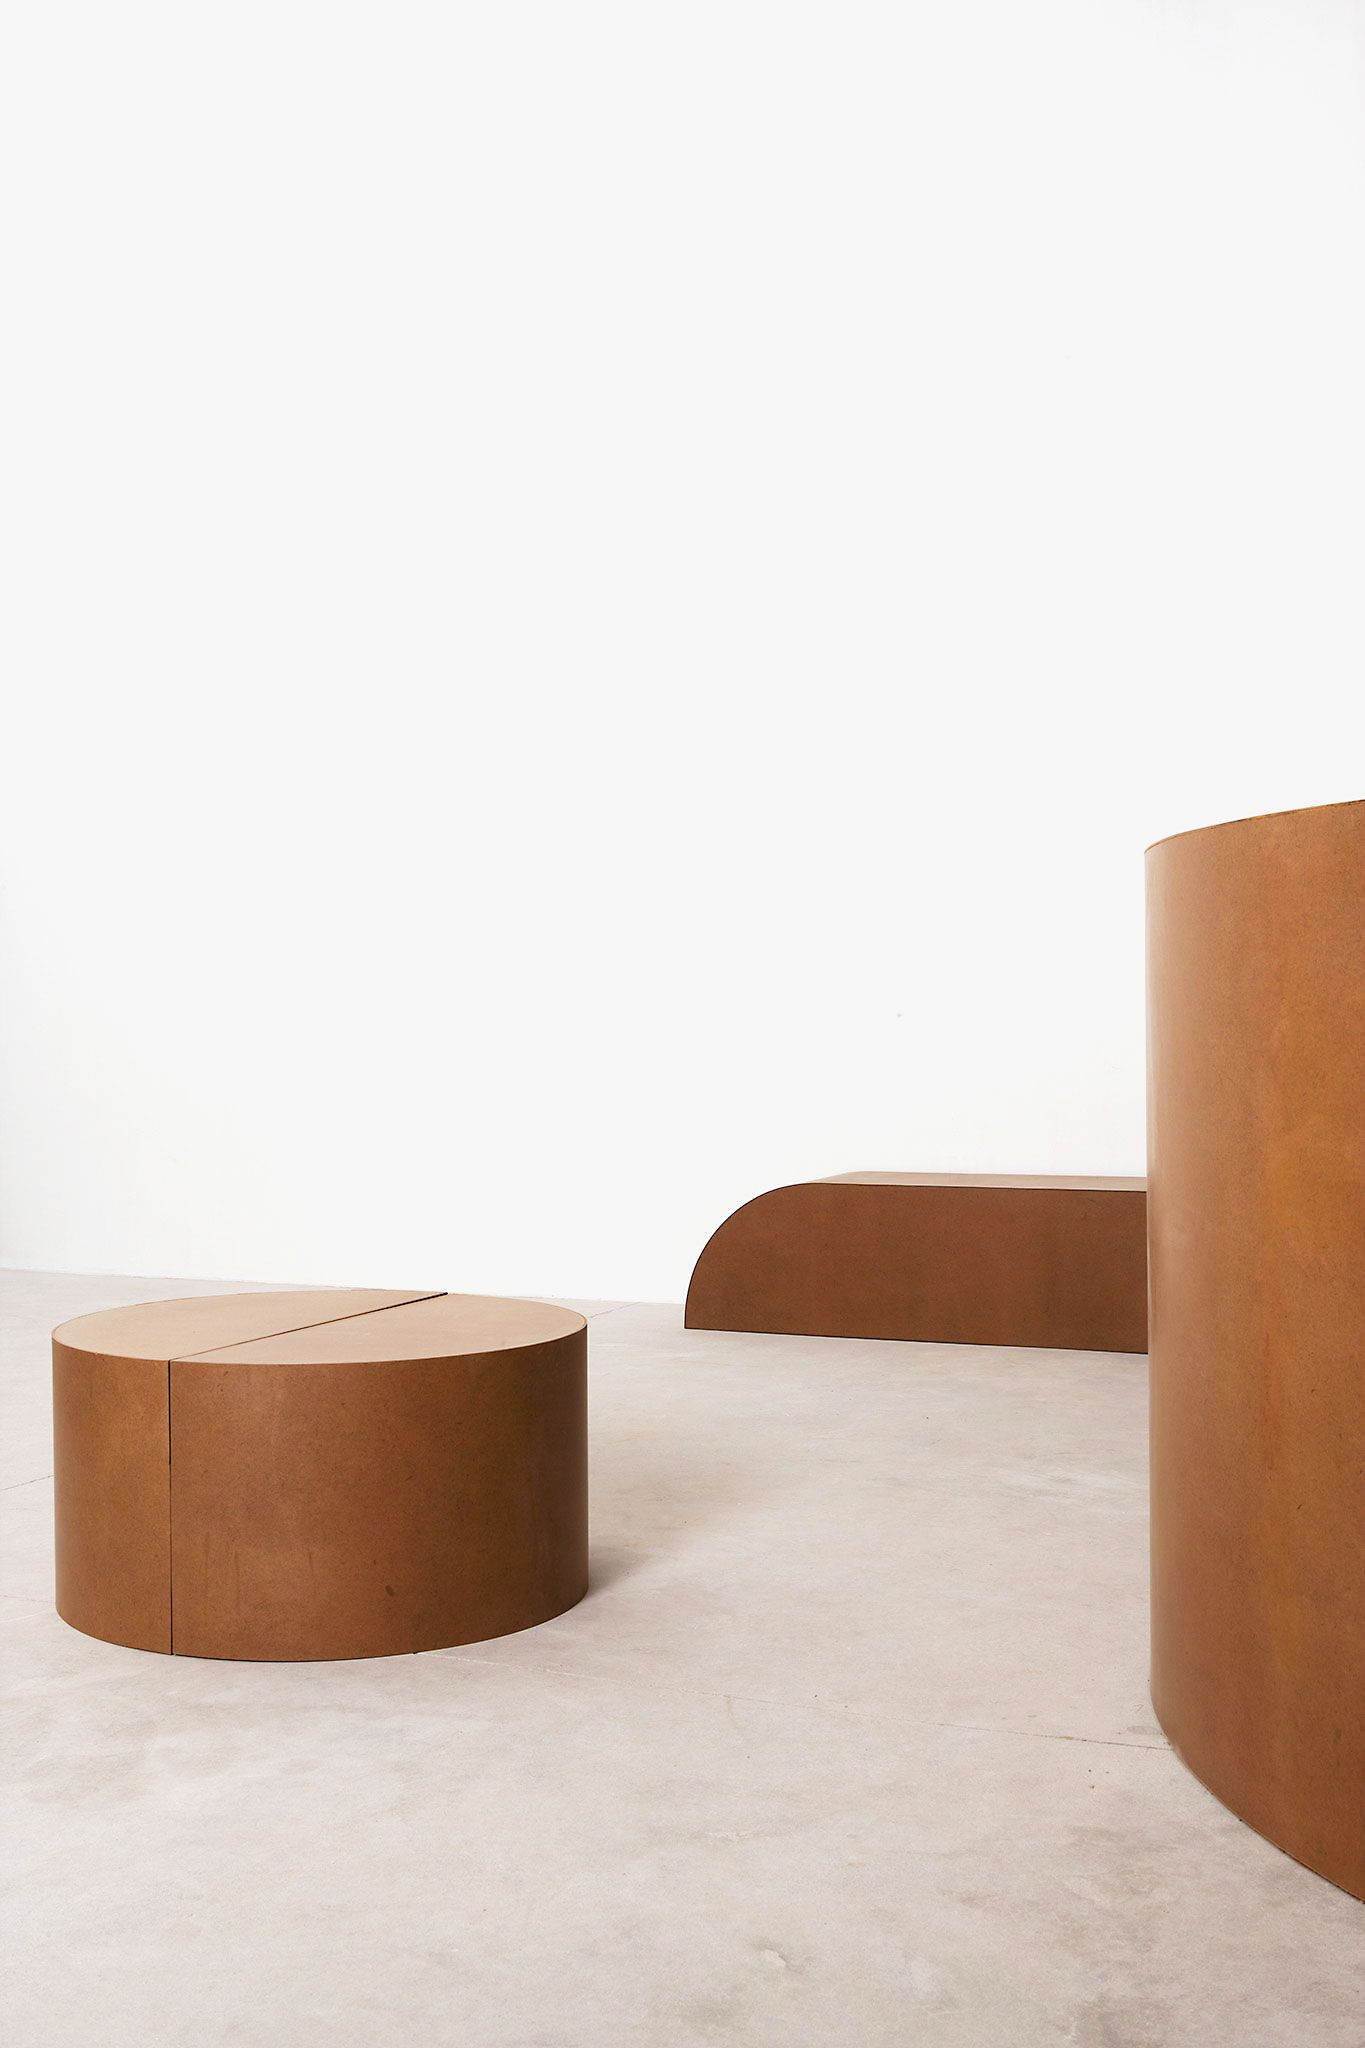 Furniture by RO/LU designers at Patrick Parrish gallery. New York